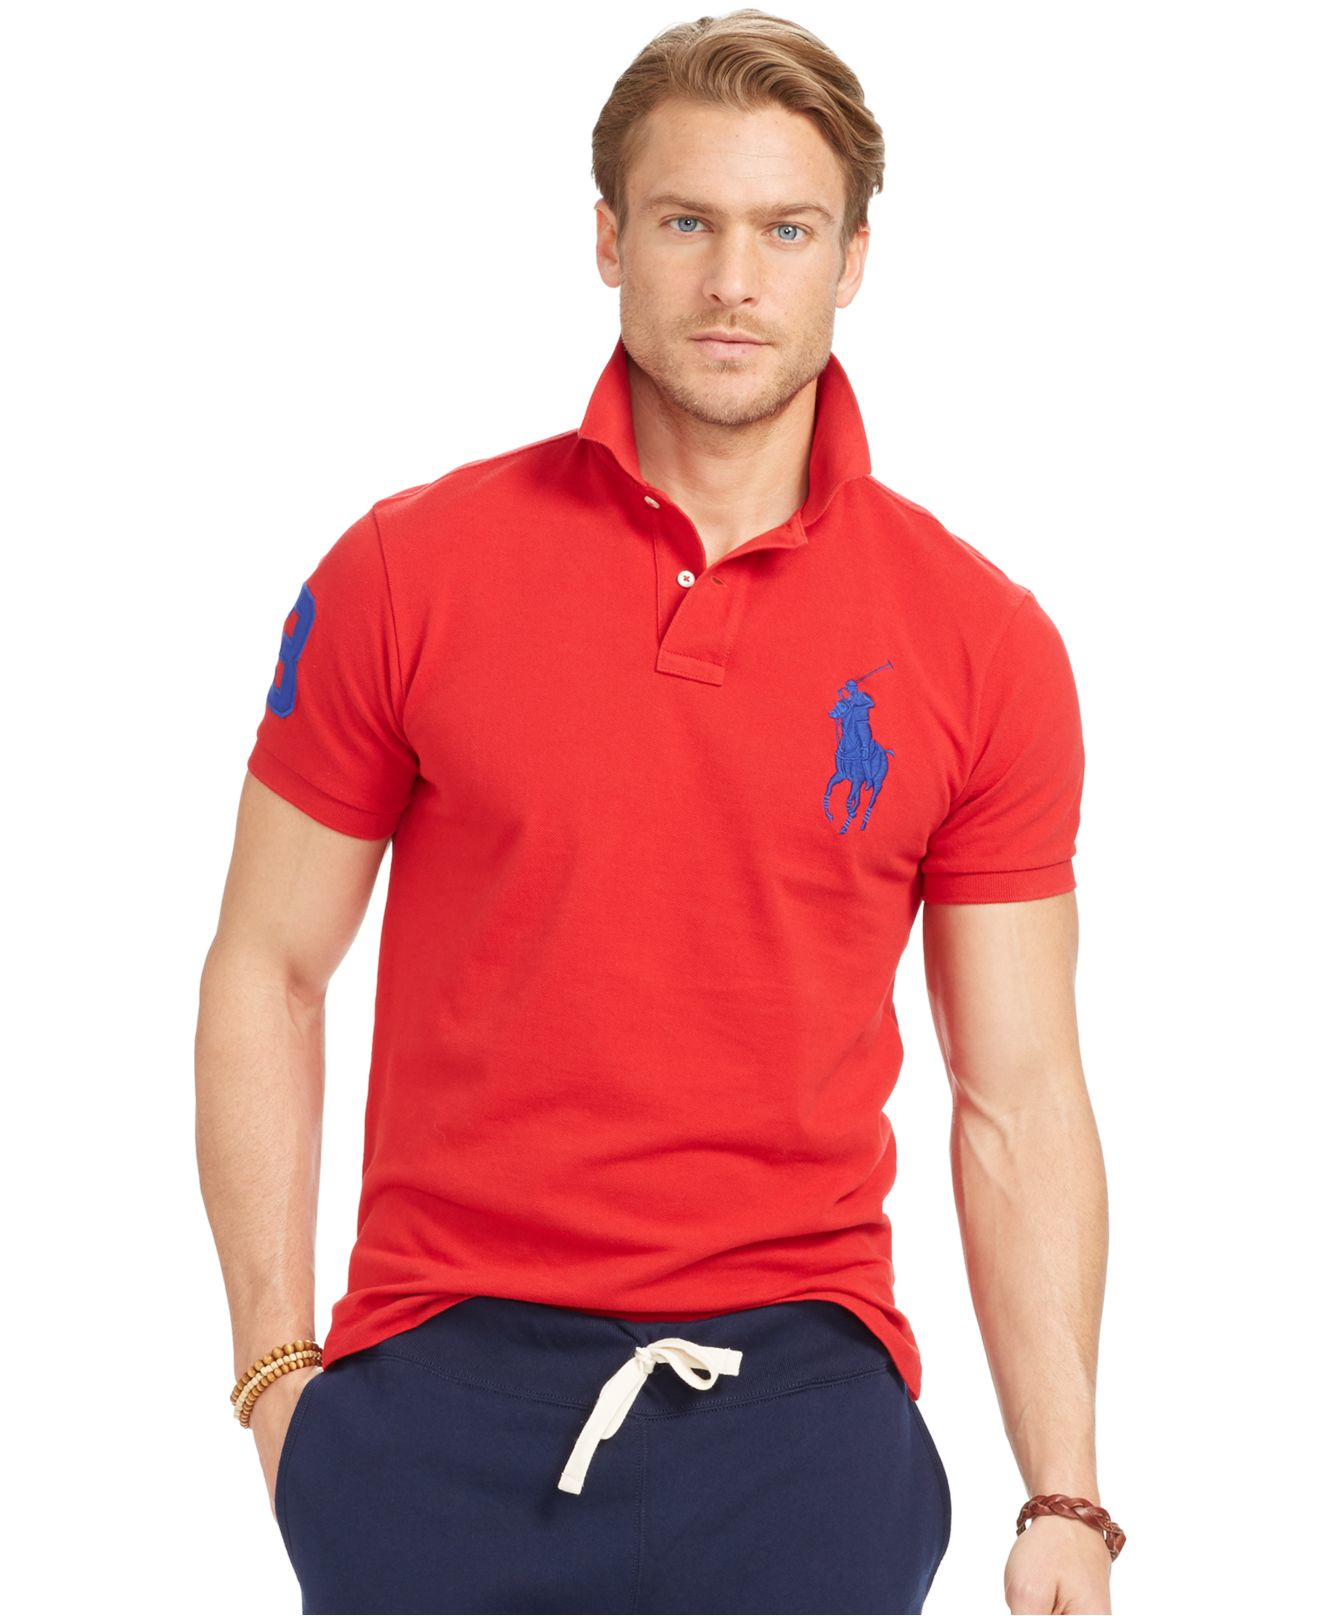 Polo ralph lauren men 39 s custom fit big pony mesh polo for Man in polo shirt